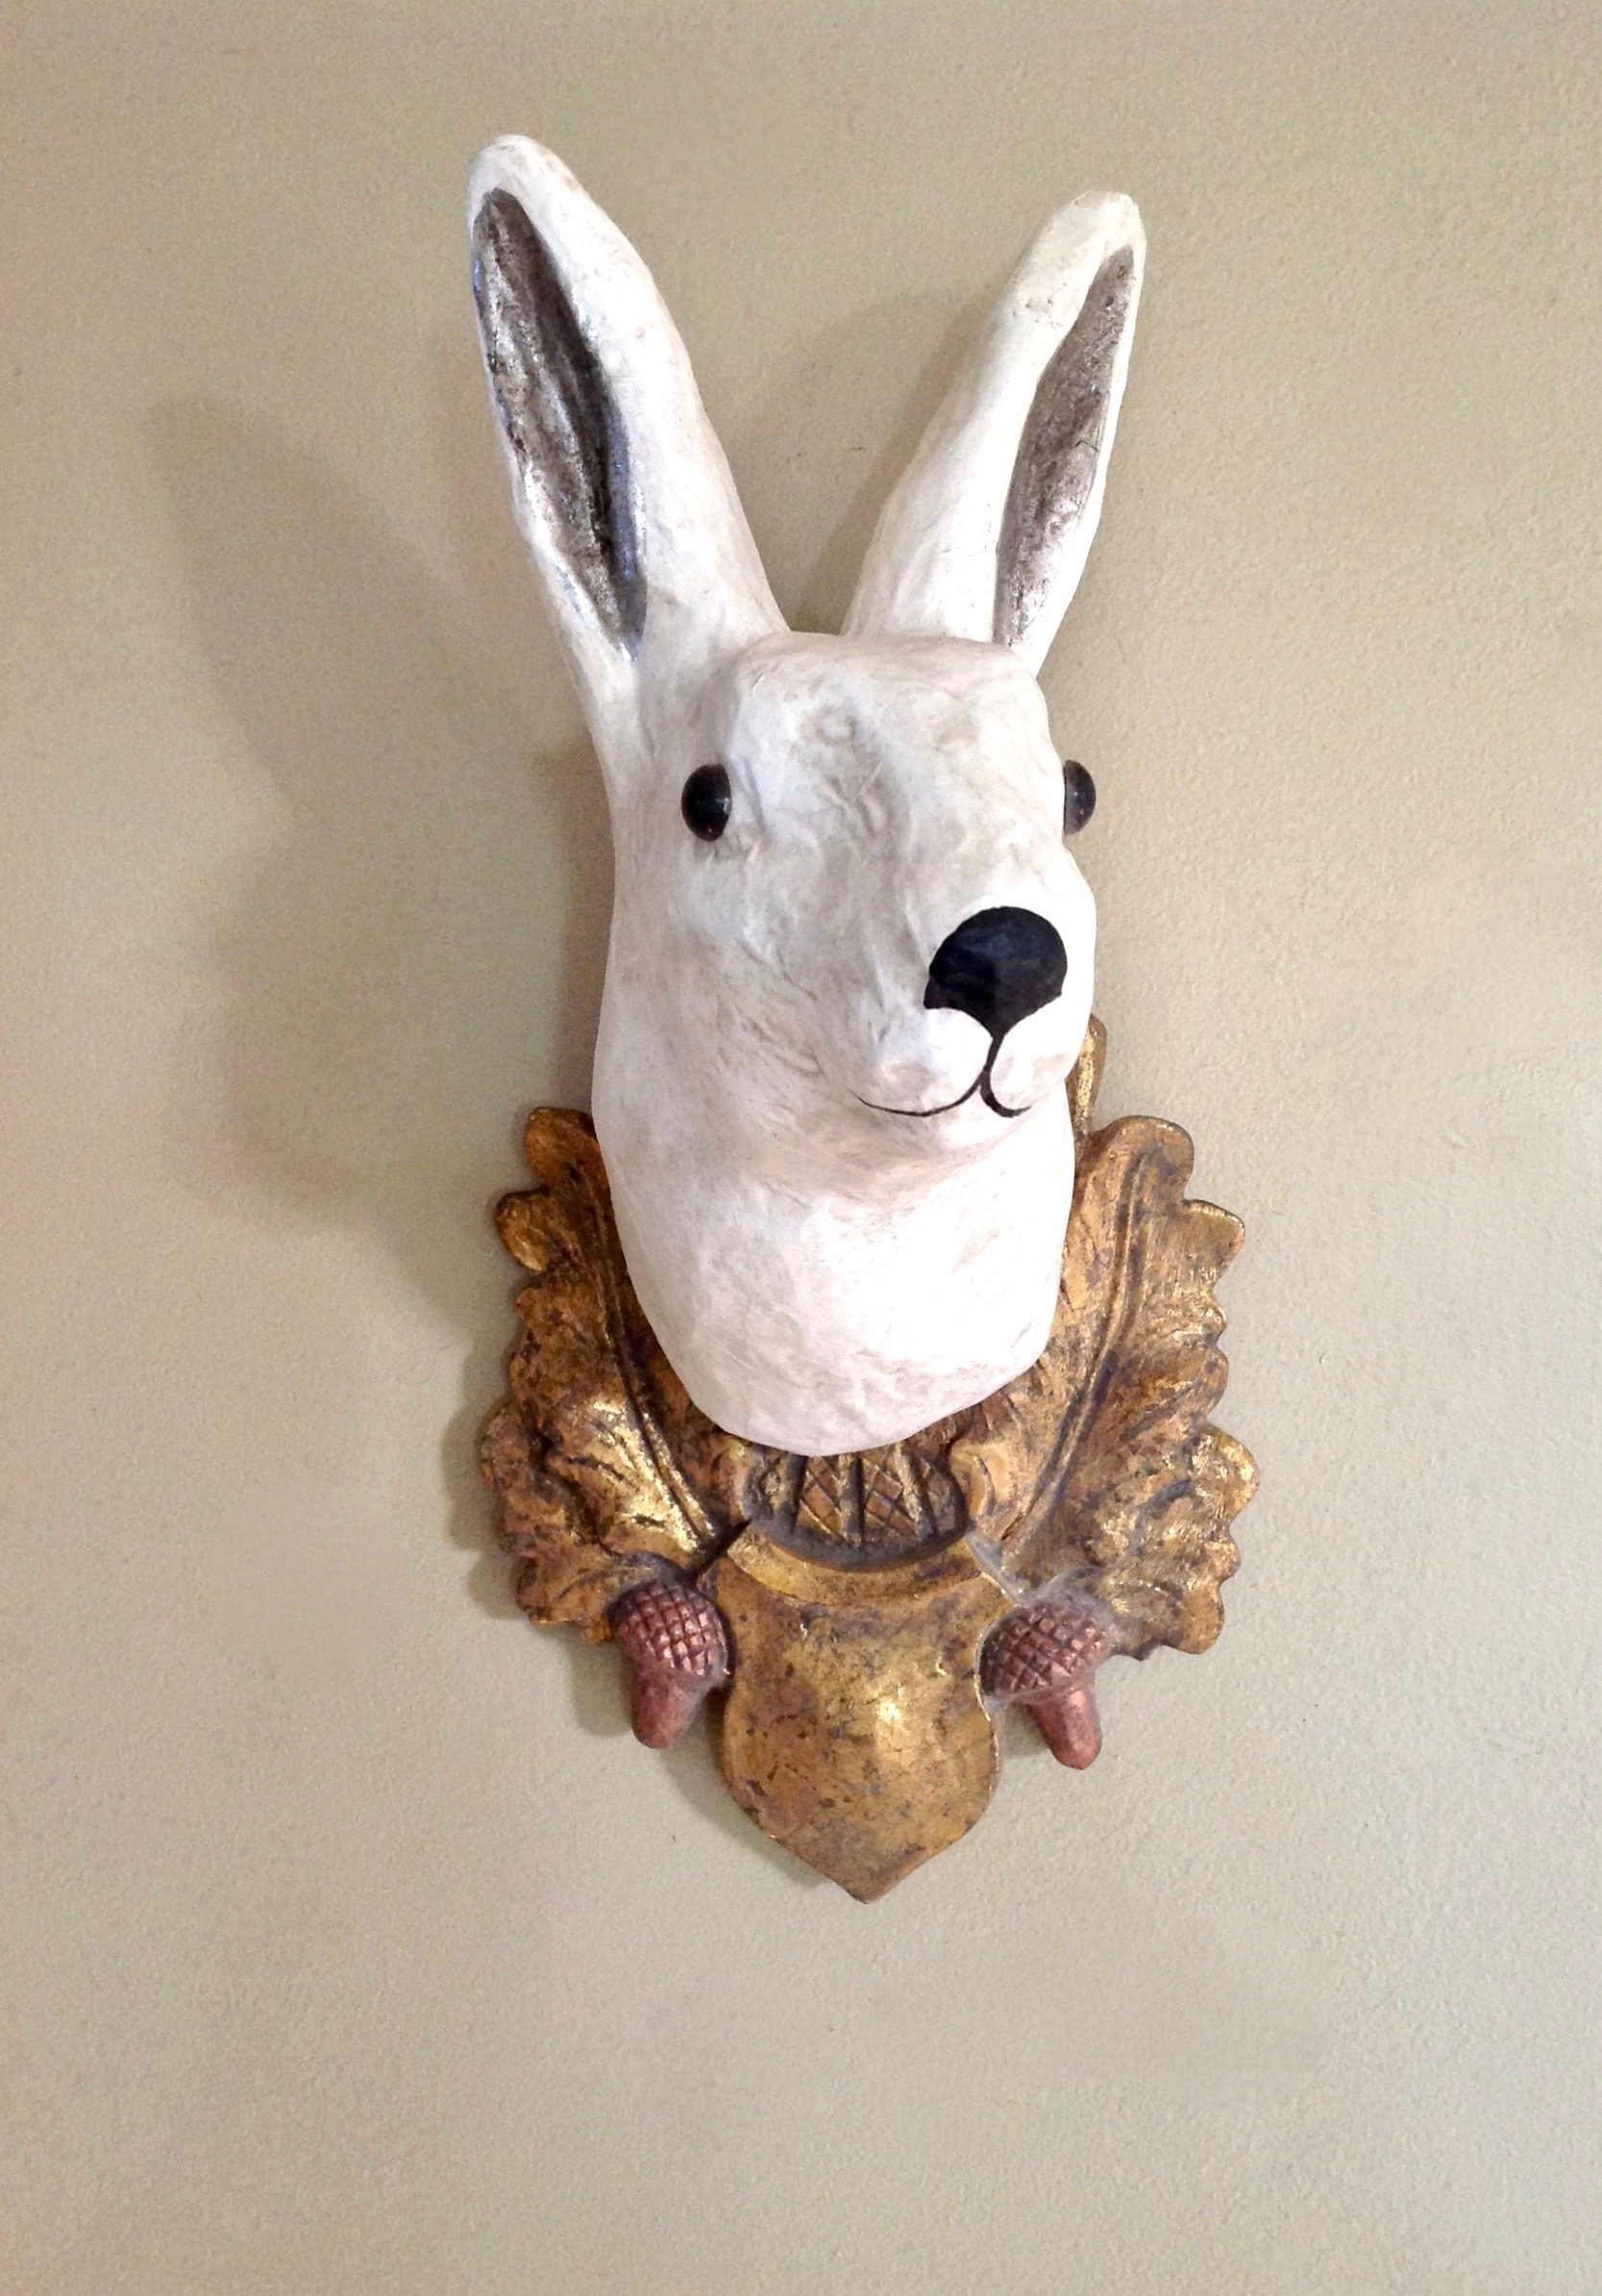 Rabbit trophy go home modern decor gifts for Rabbit decorations home